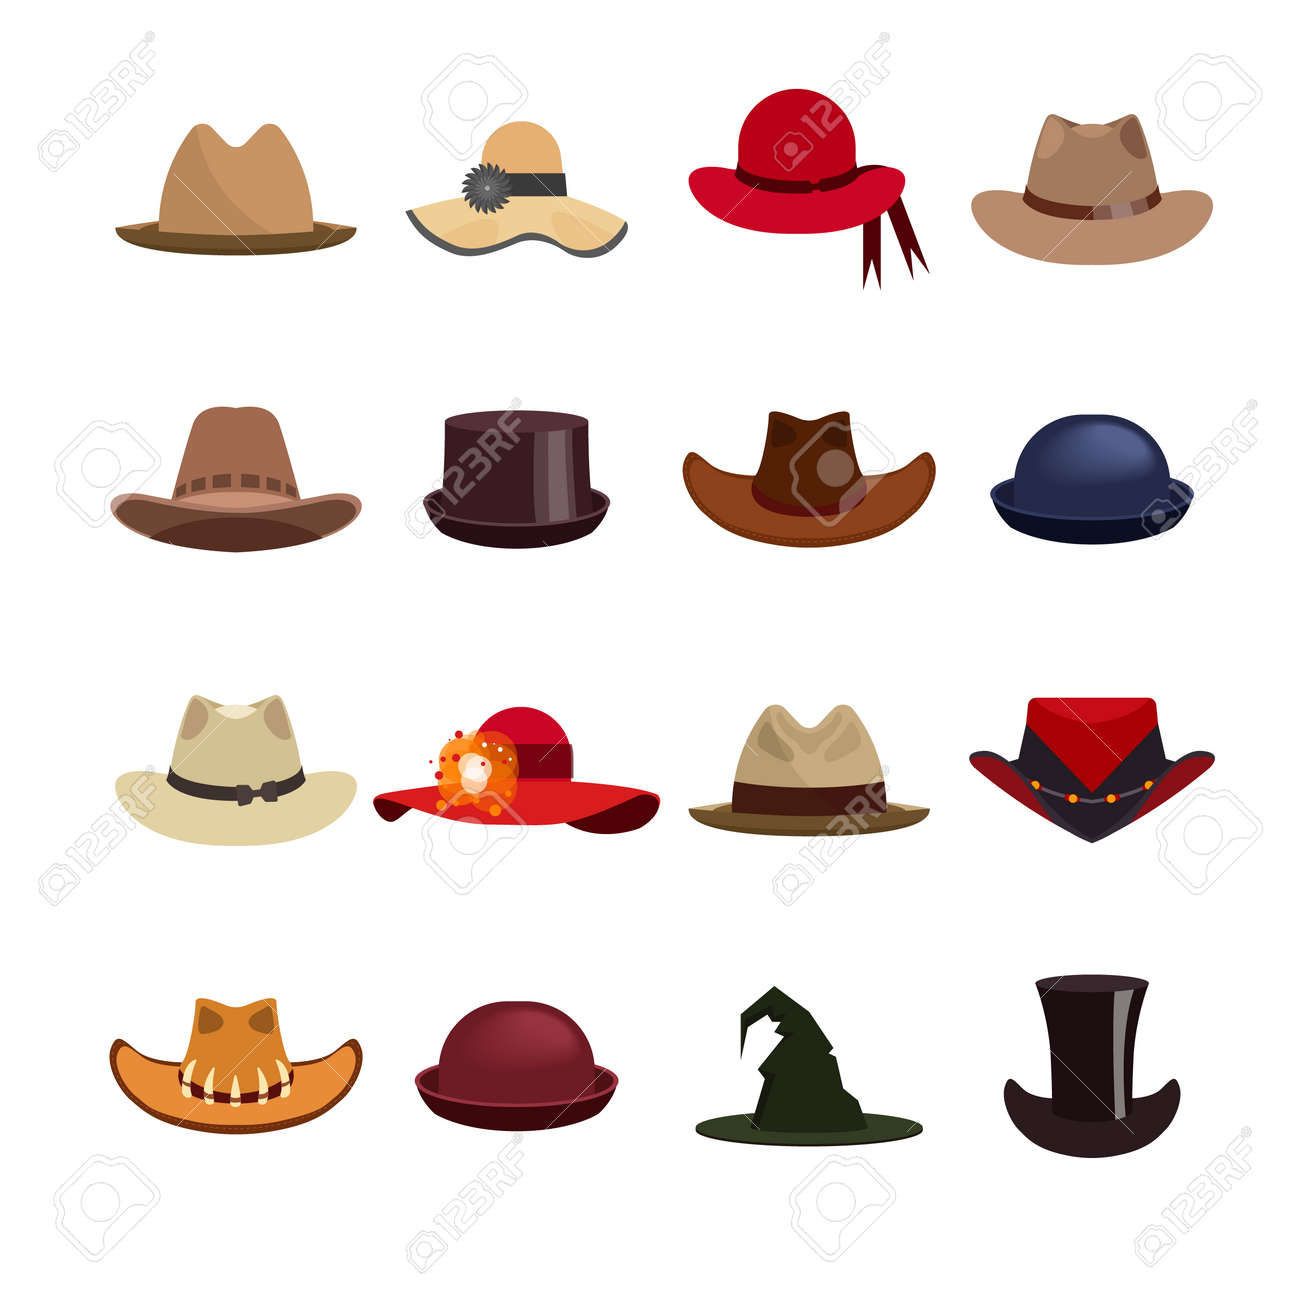 Vector - Vector set of man and woman hats. Illustration with different types  of hats d2915a977b7